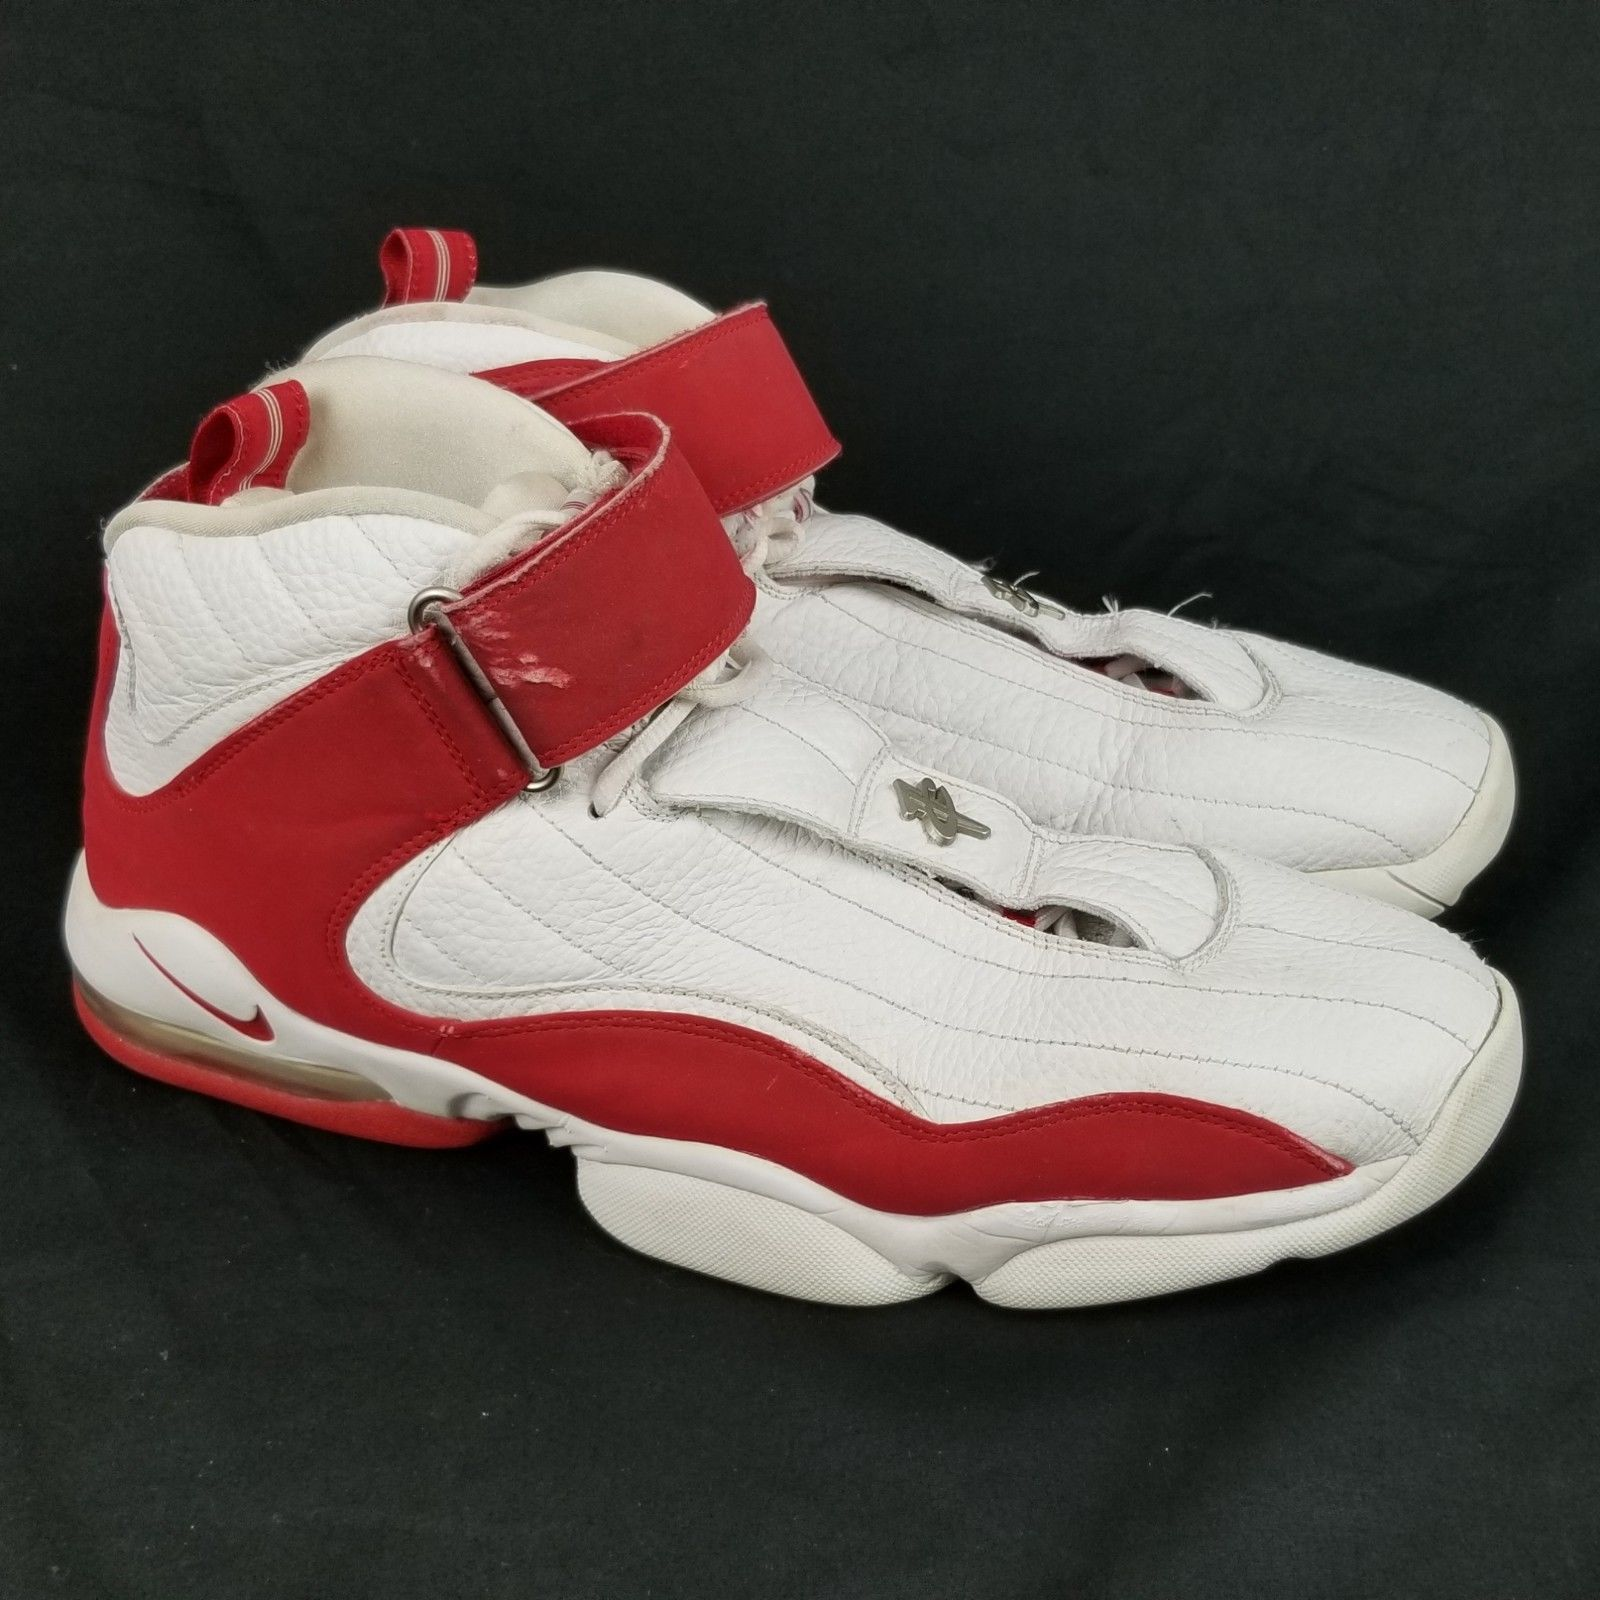 los angeles 219f0 2a4e2 ... Nike Air Max Penny IV Size 14 Mens DS White Red 312455-161 Retro ...